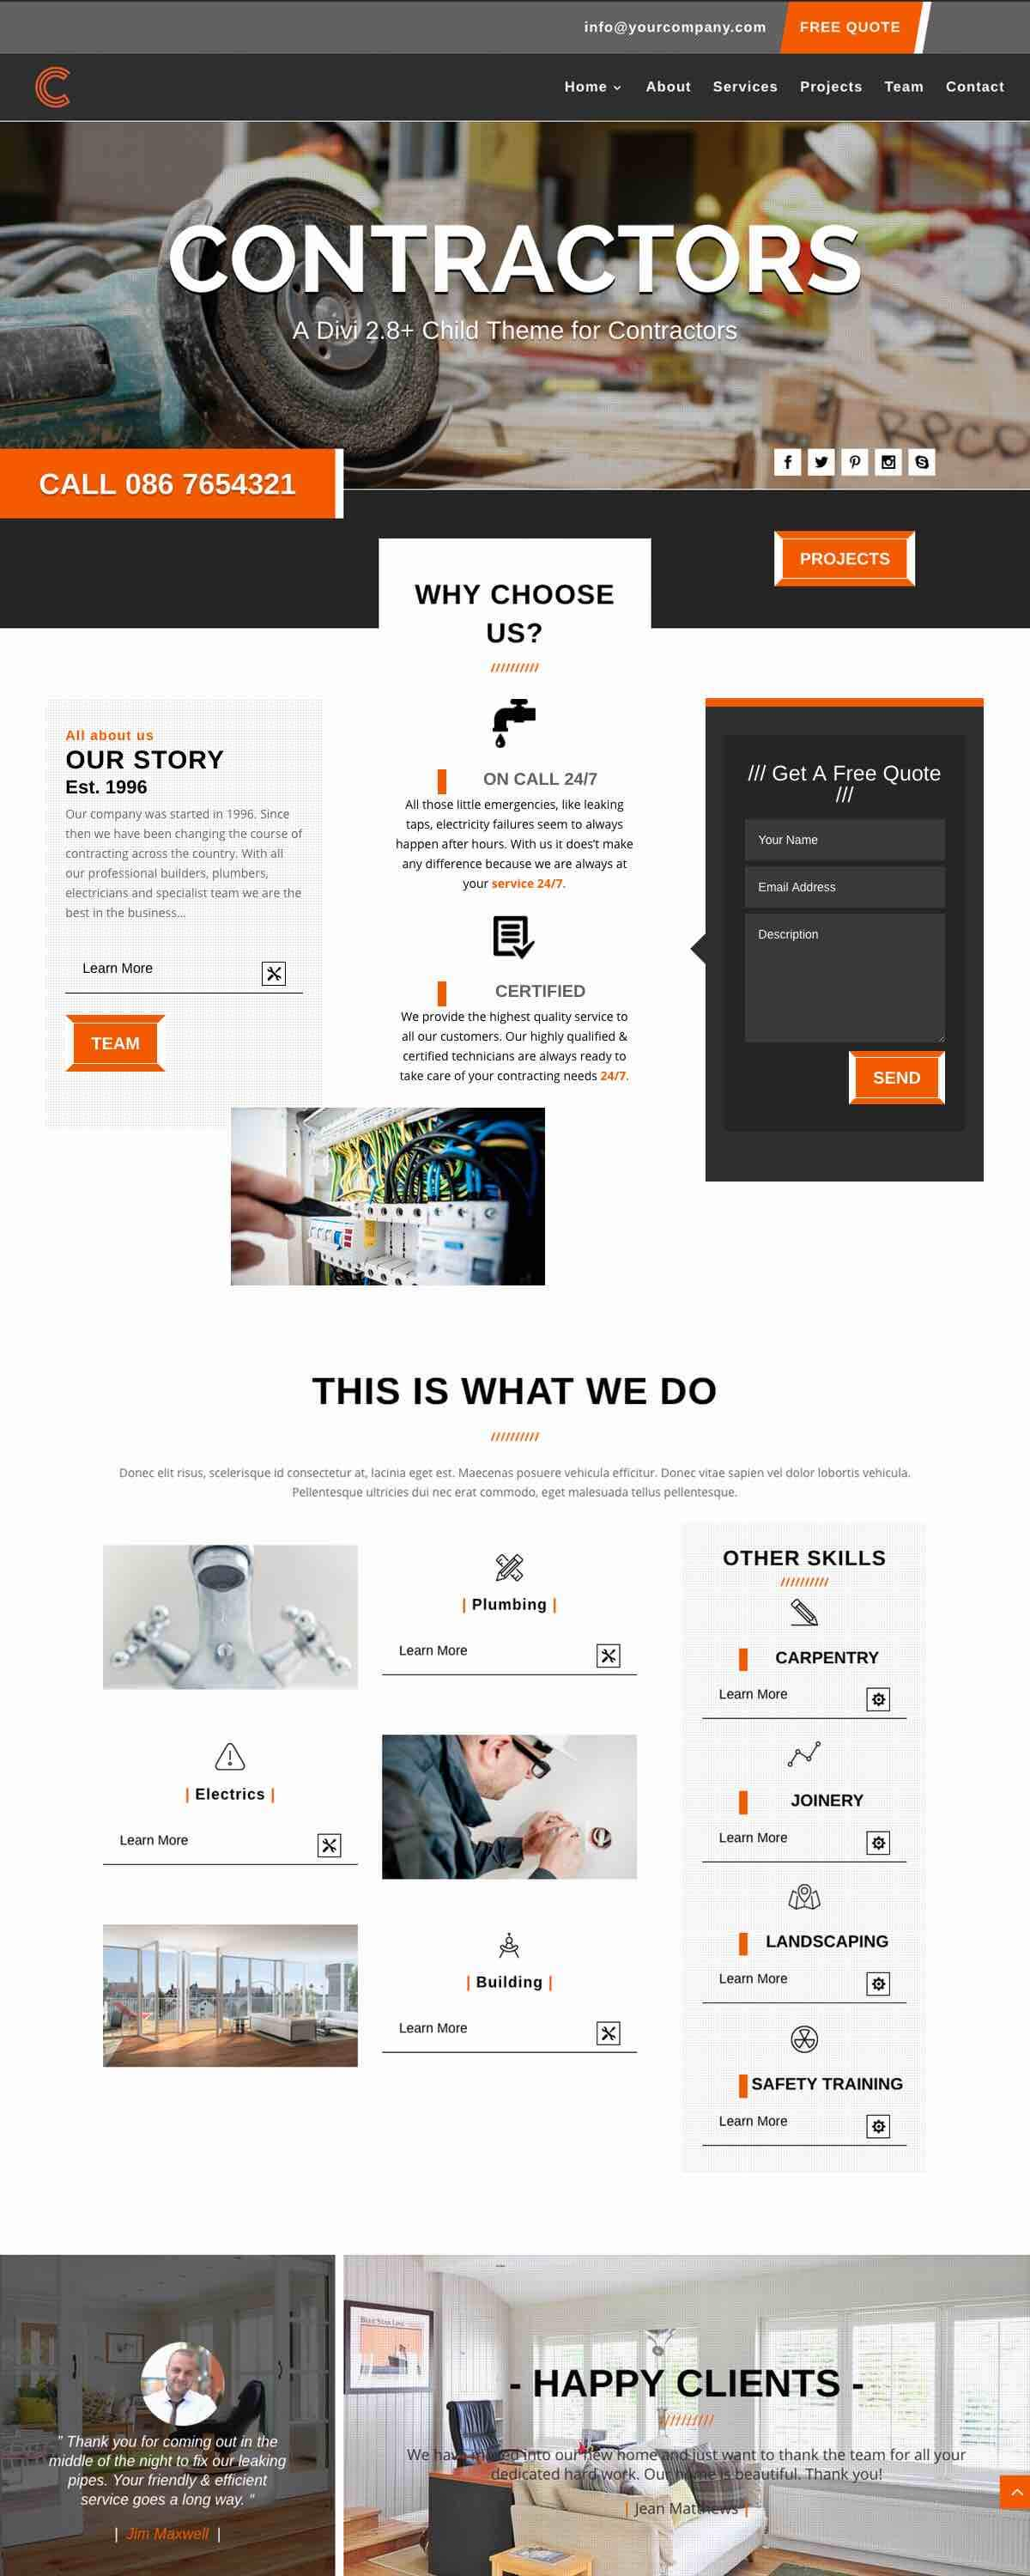 CONTRACTORS - DIVI CHILD THEME